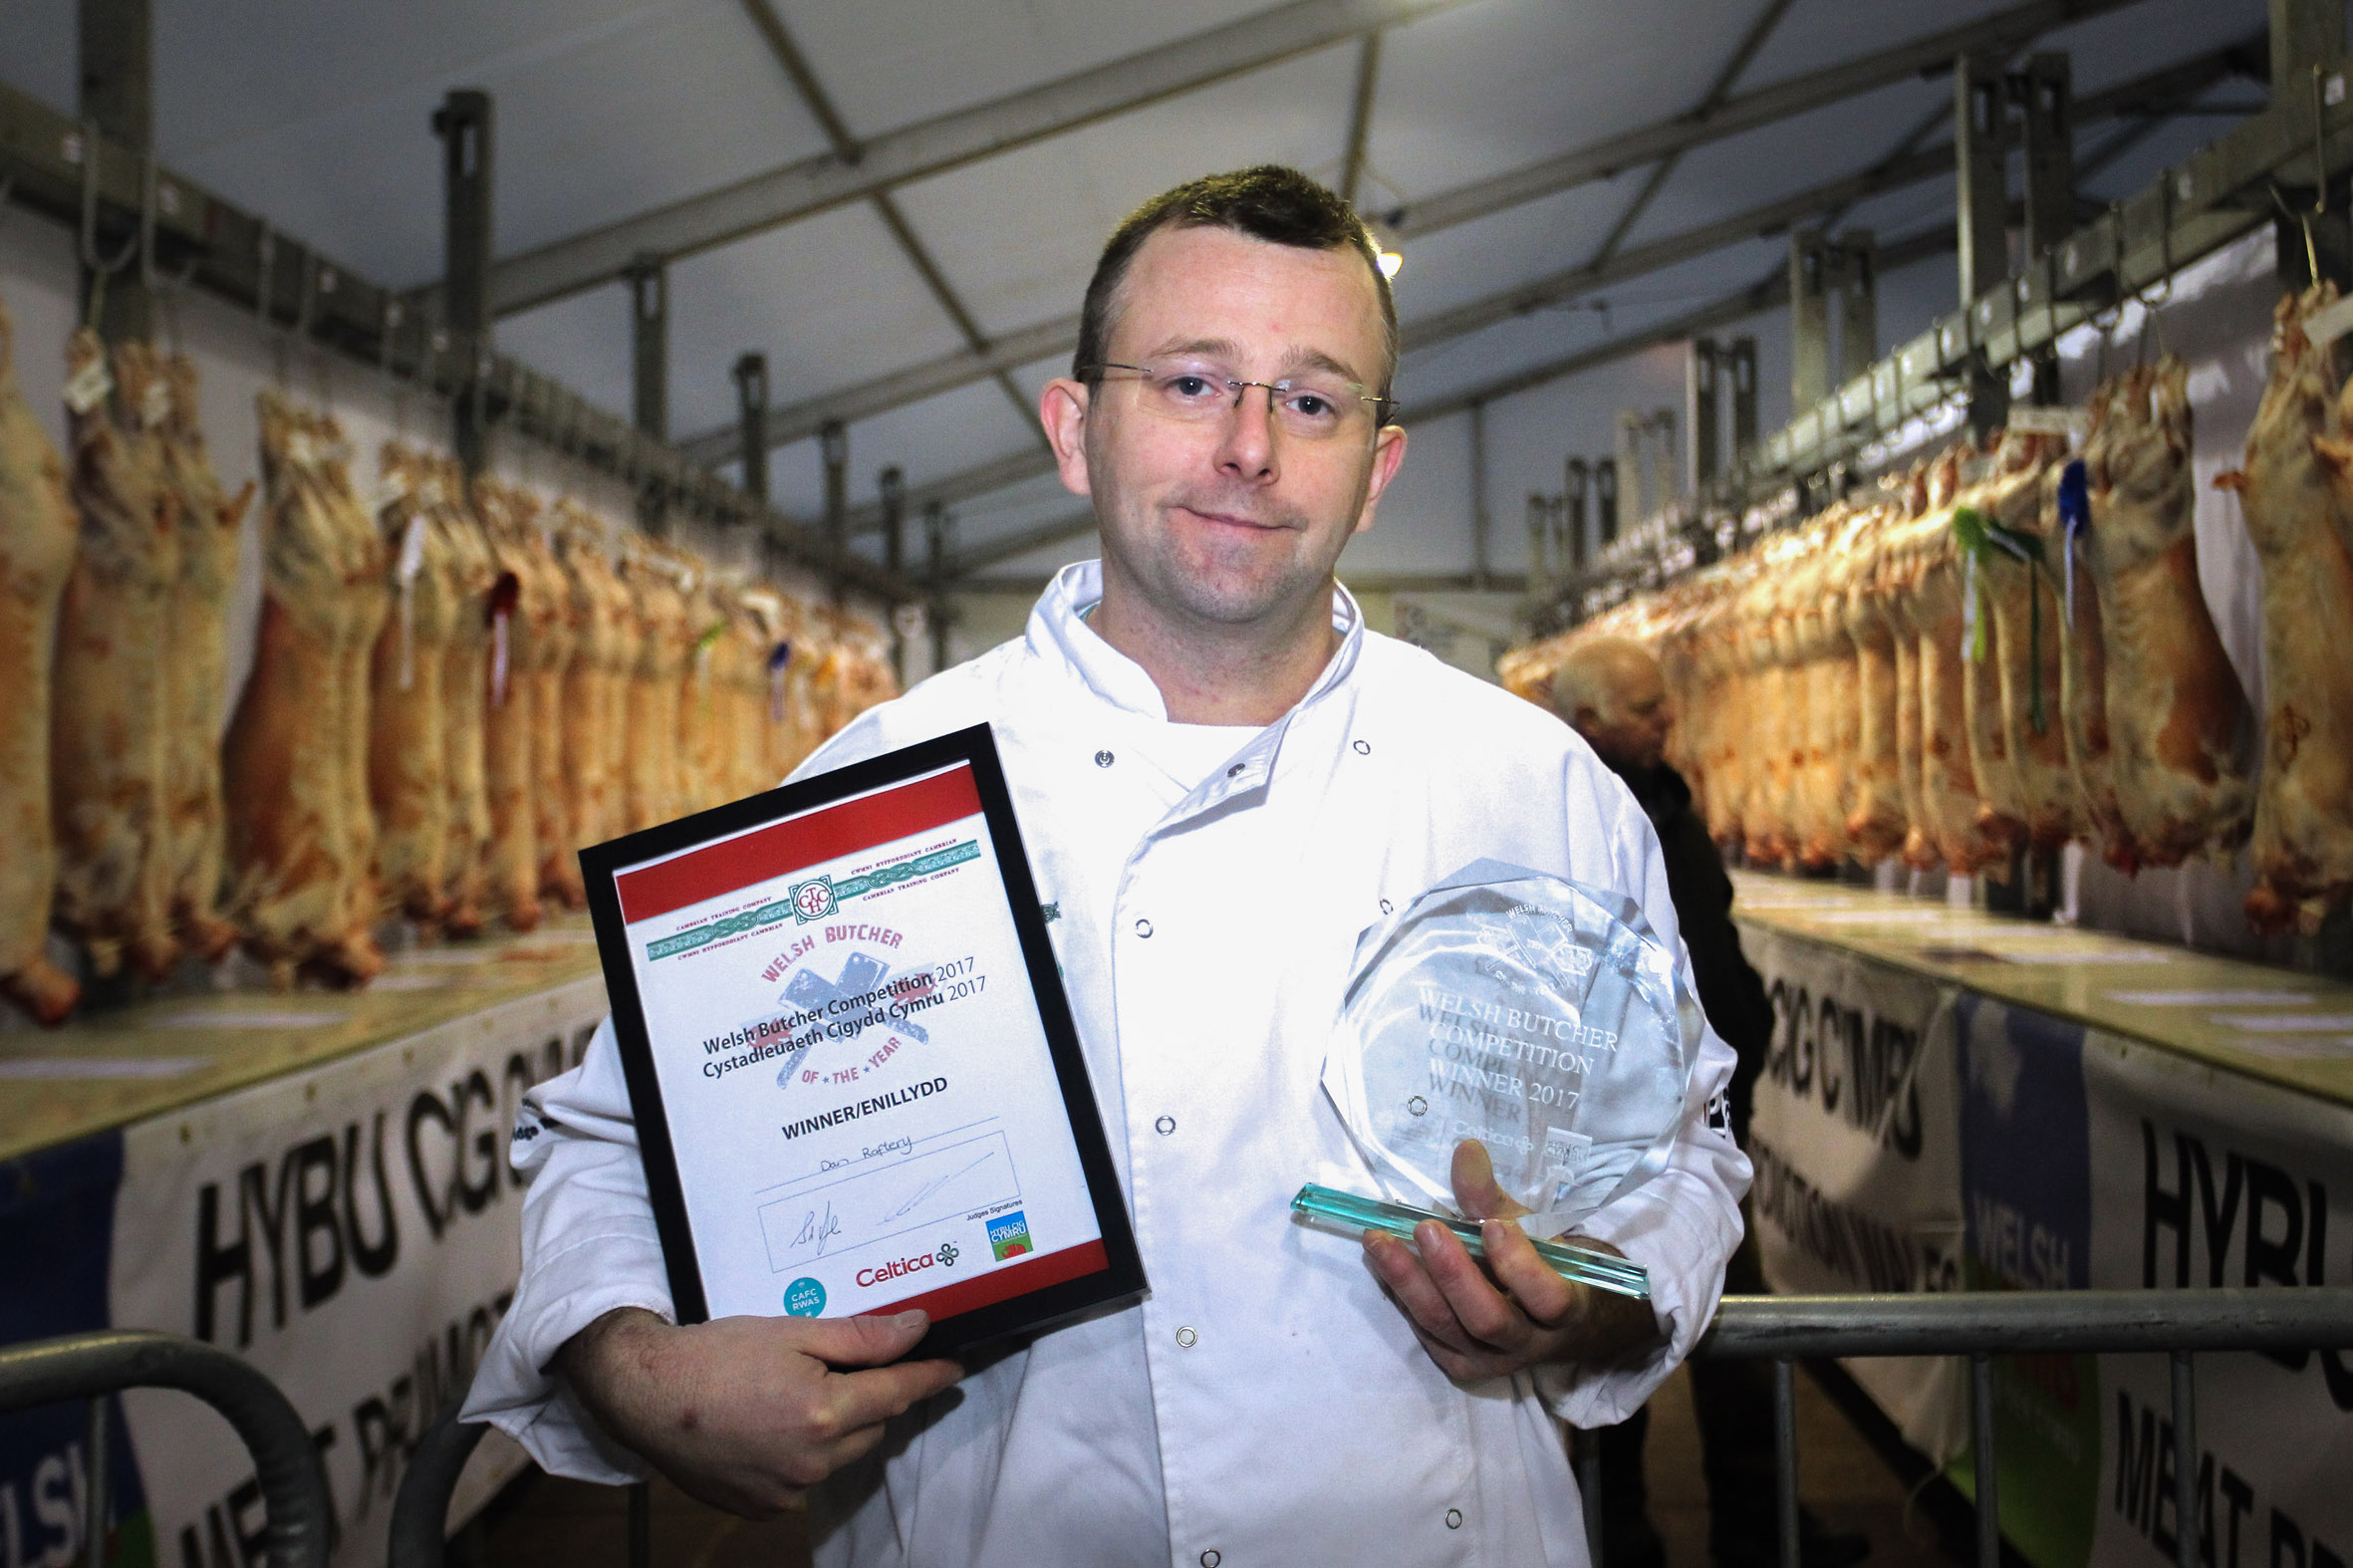 Welsh Butcher of the Year 2017 Daniel Allen-Raftery with his trophy and certificate.